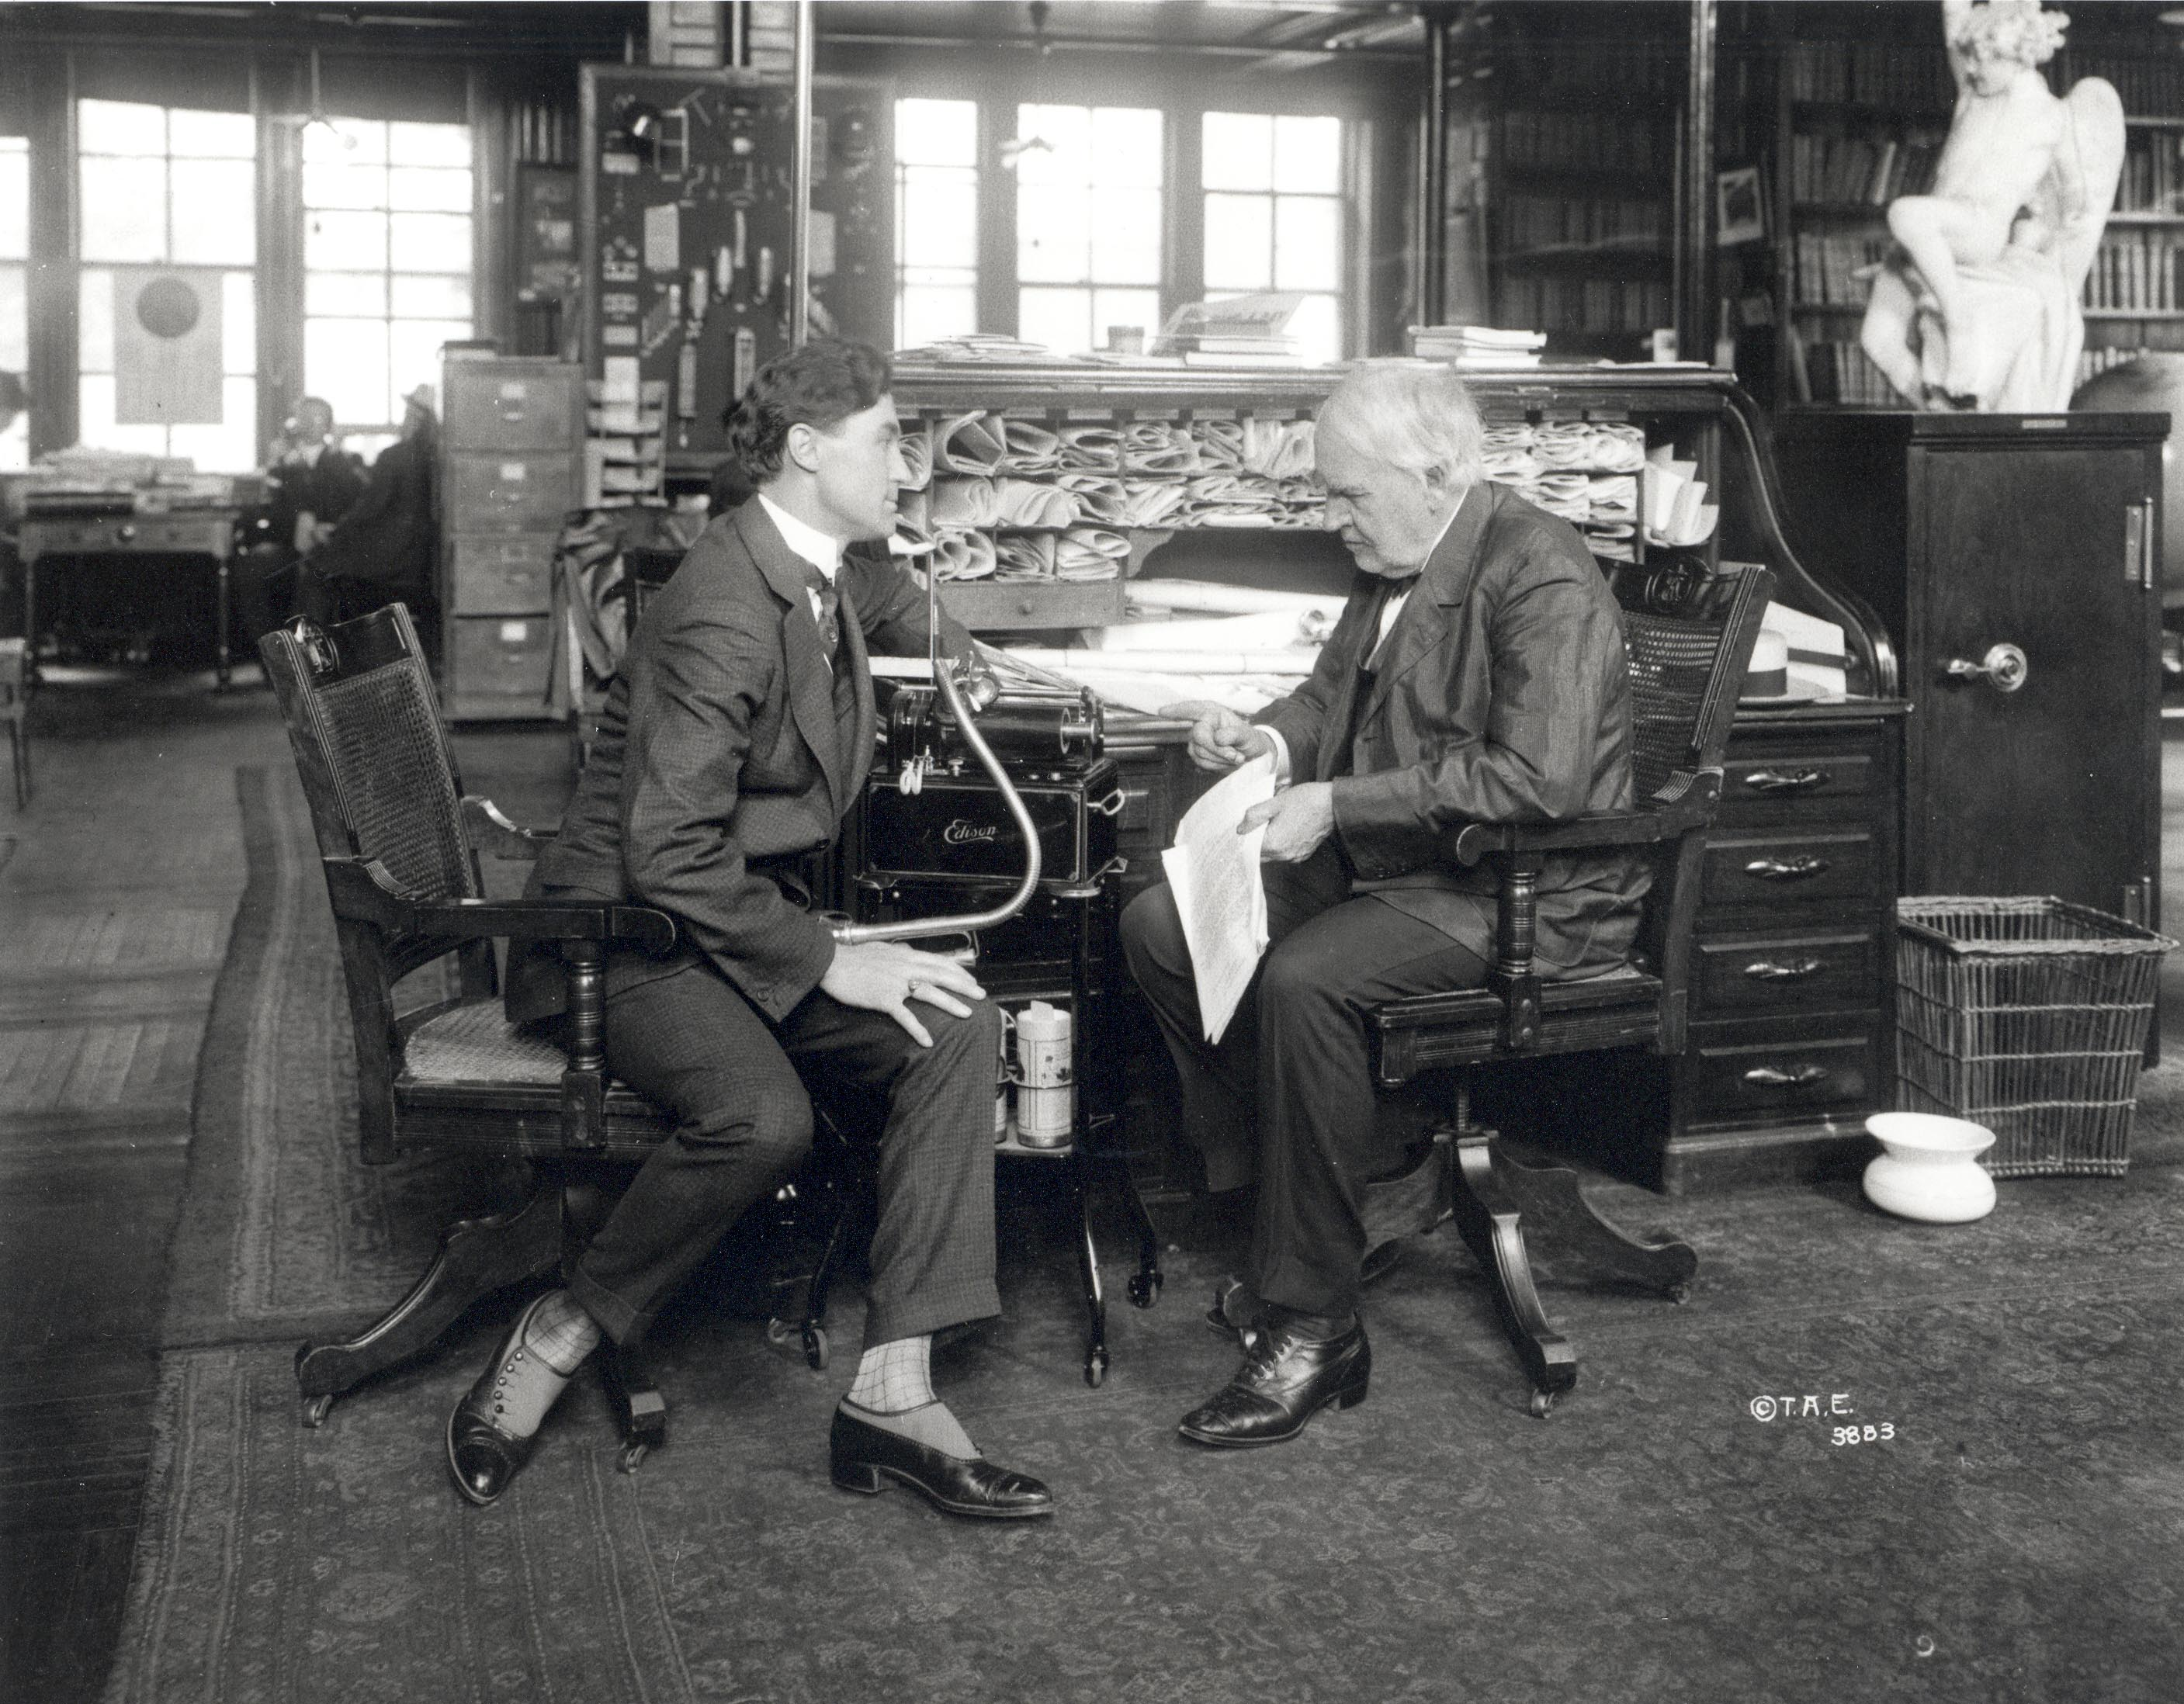 Like any good R&D organization, a capable staff keeping project managers aware of what is going on is indispensable. Here Edison confers with staff.